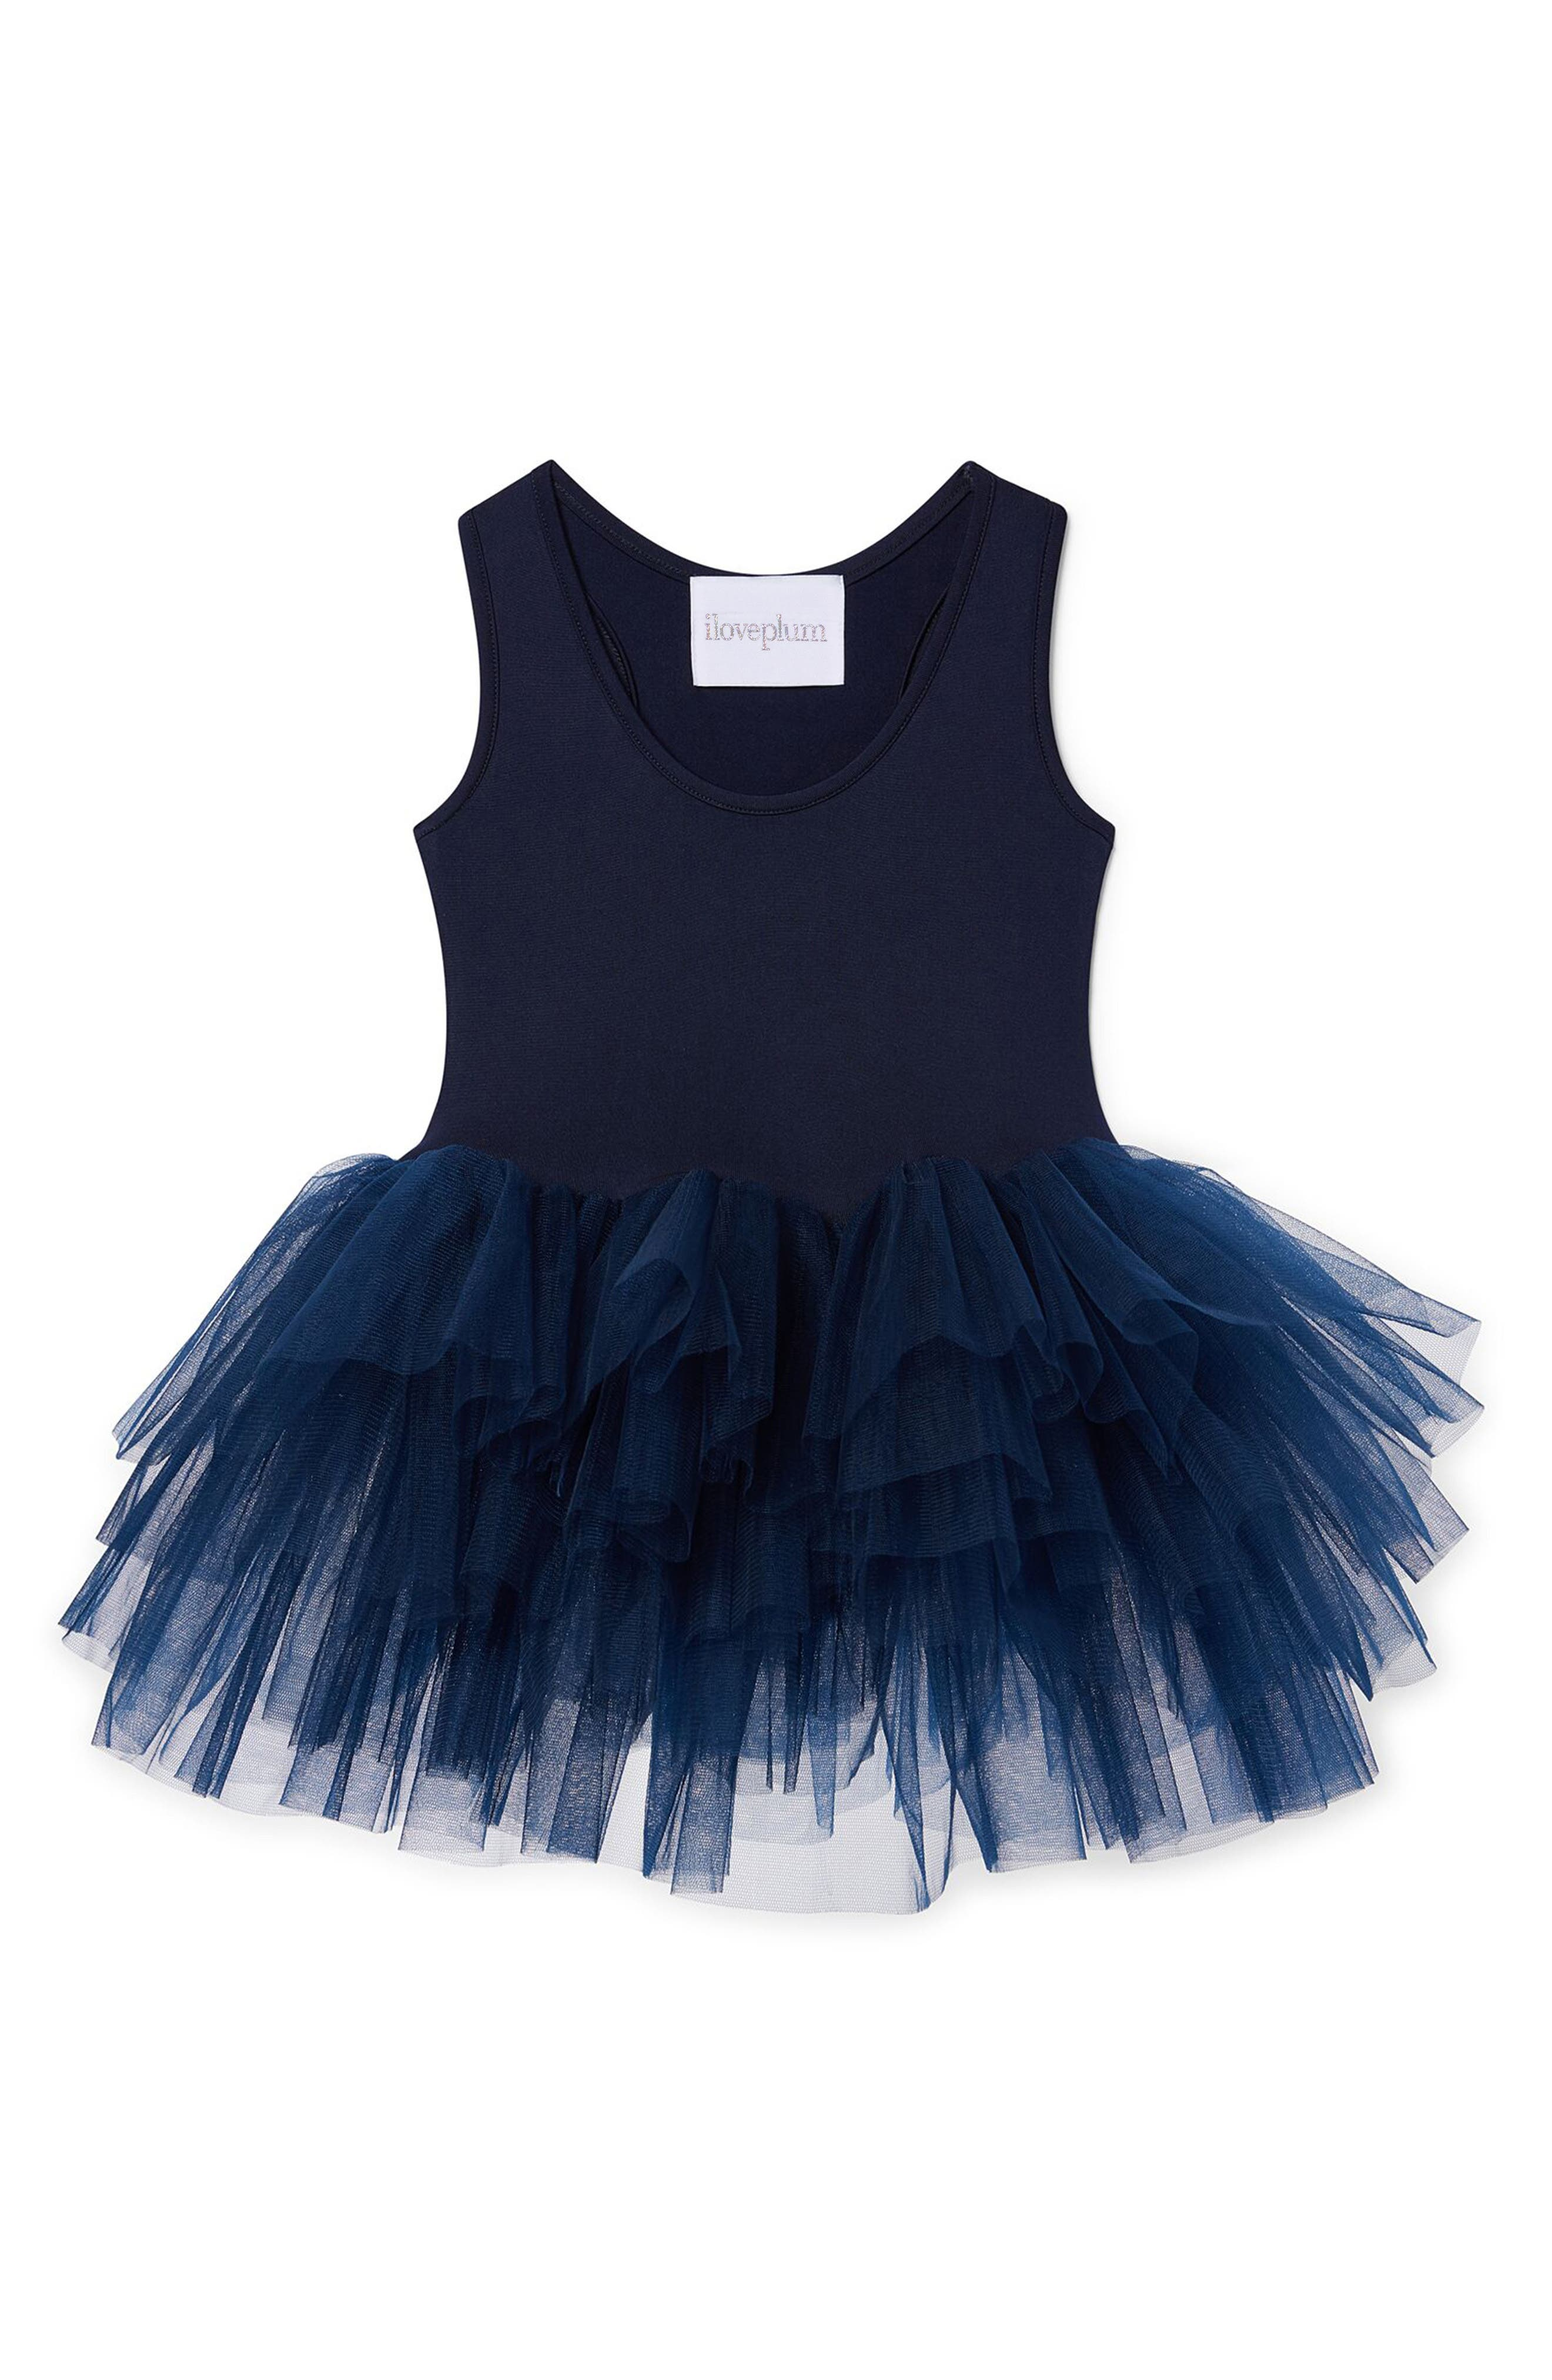 Tutu Dress,                             Main thumbnail 1, color,                             400